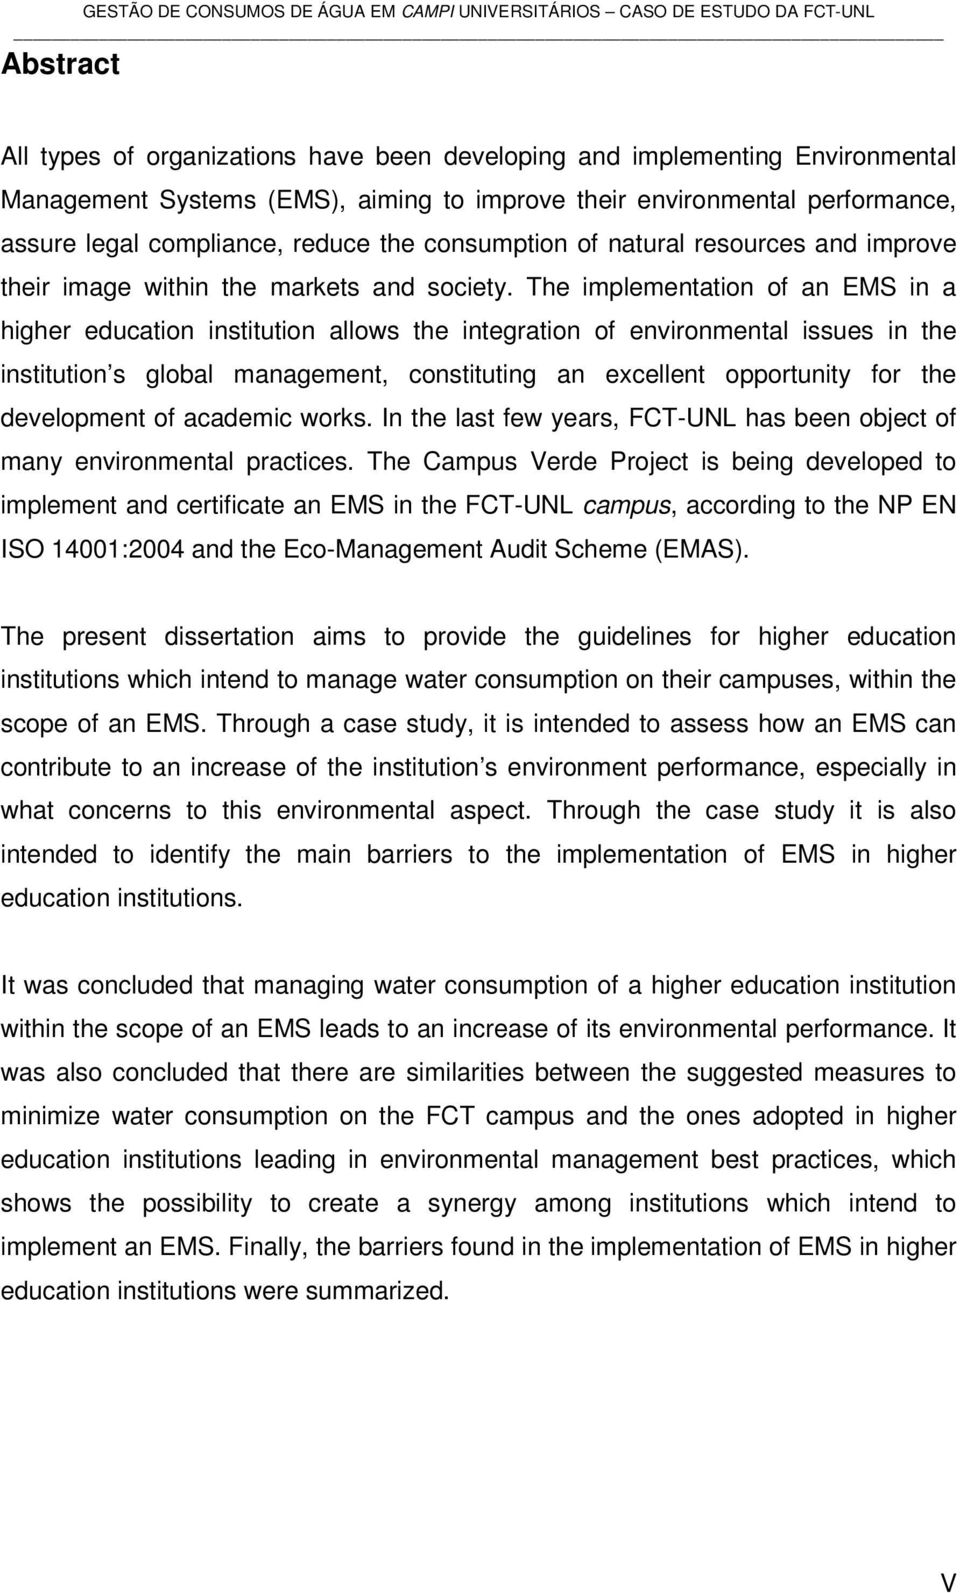 The implementation of an EMS in a higher education institution allows the integration of environmental issues in the institution s global management, constituting an excellent opportunity for the